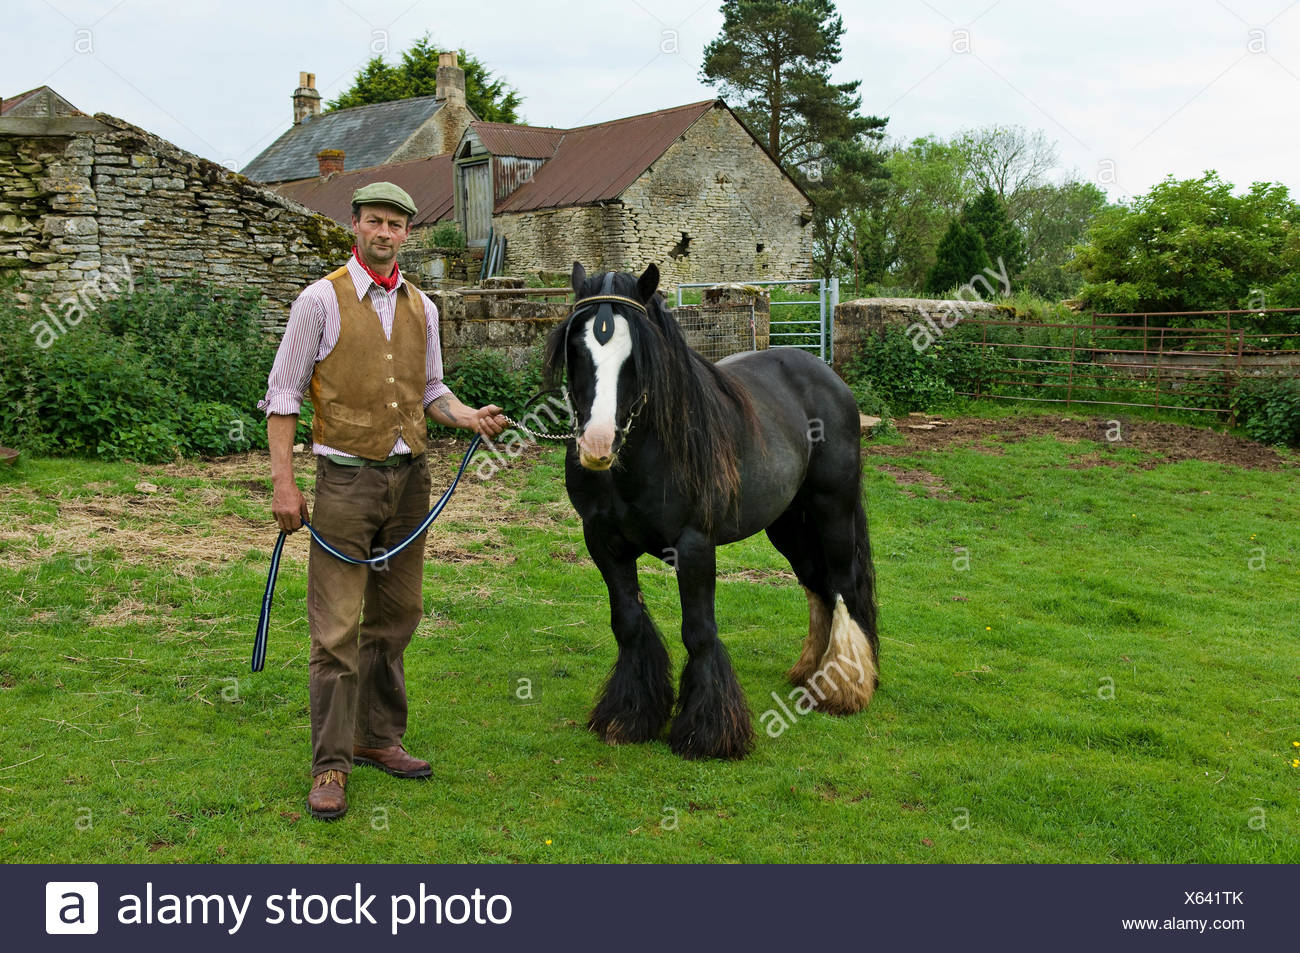 A farm worker holding a horse on a leading rein. - Stock Image